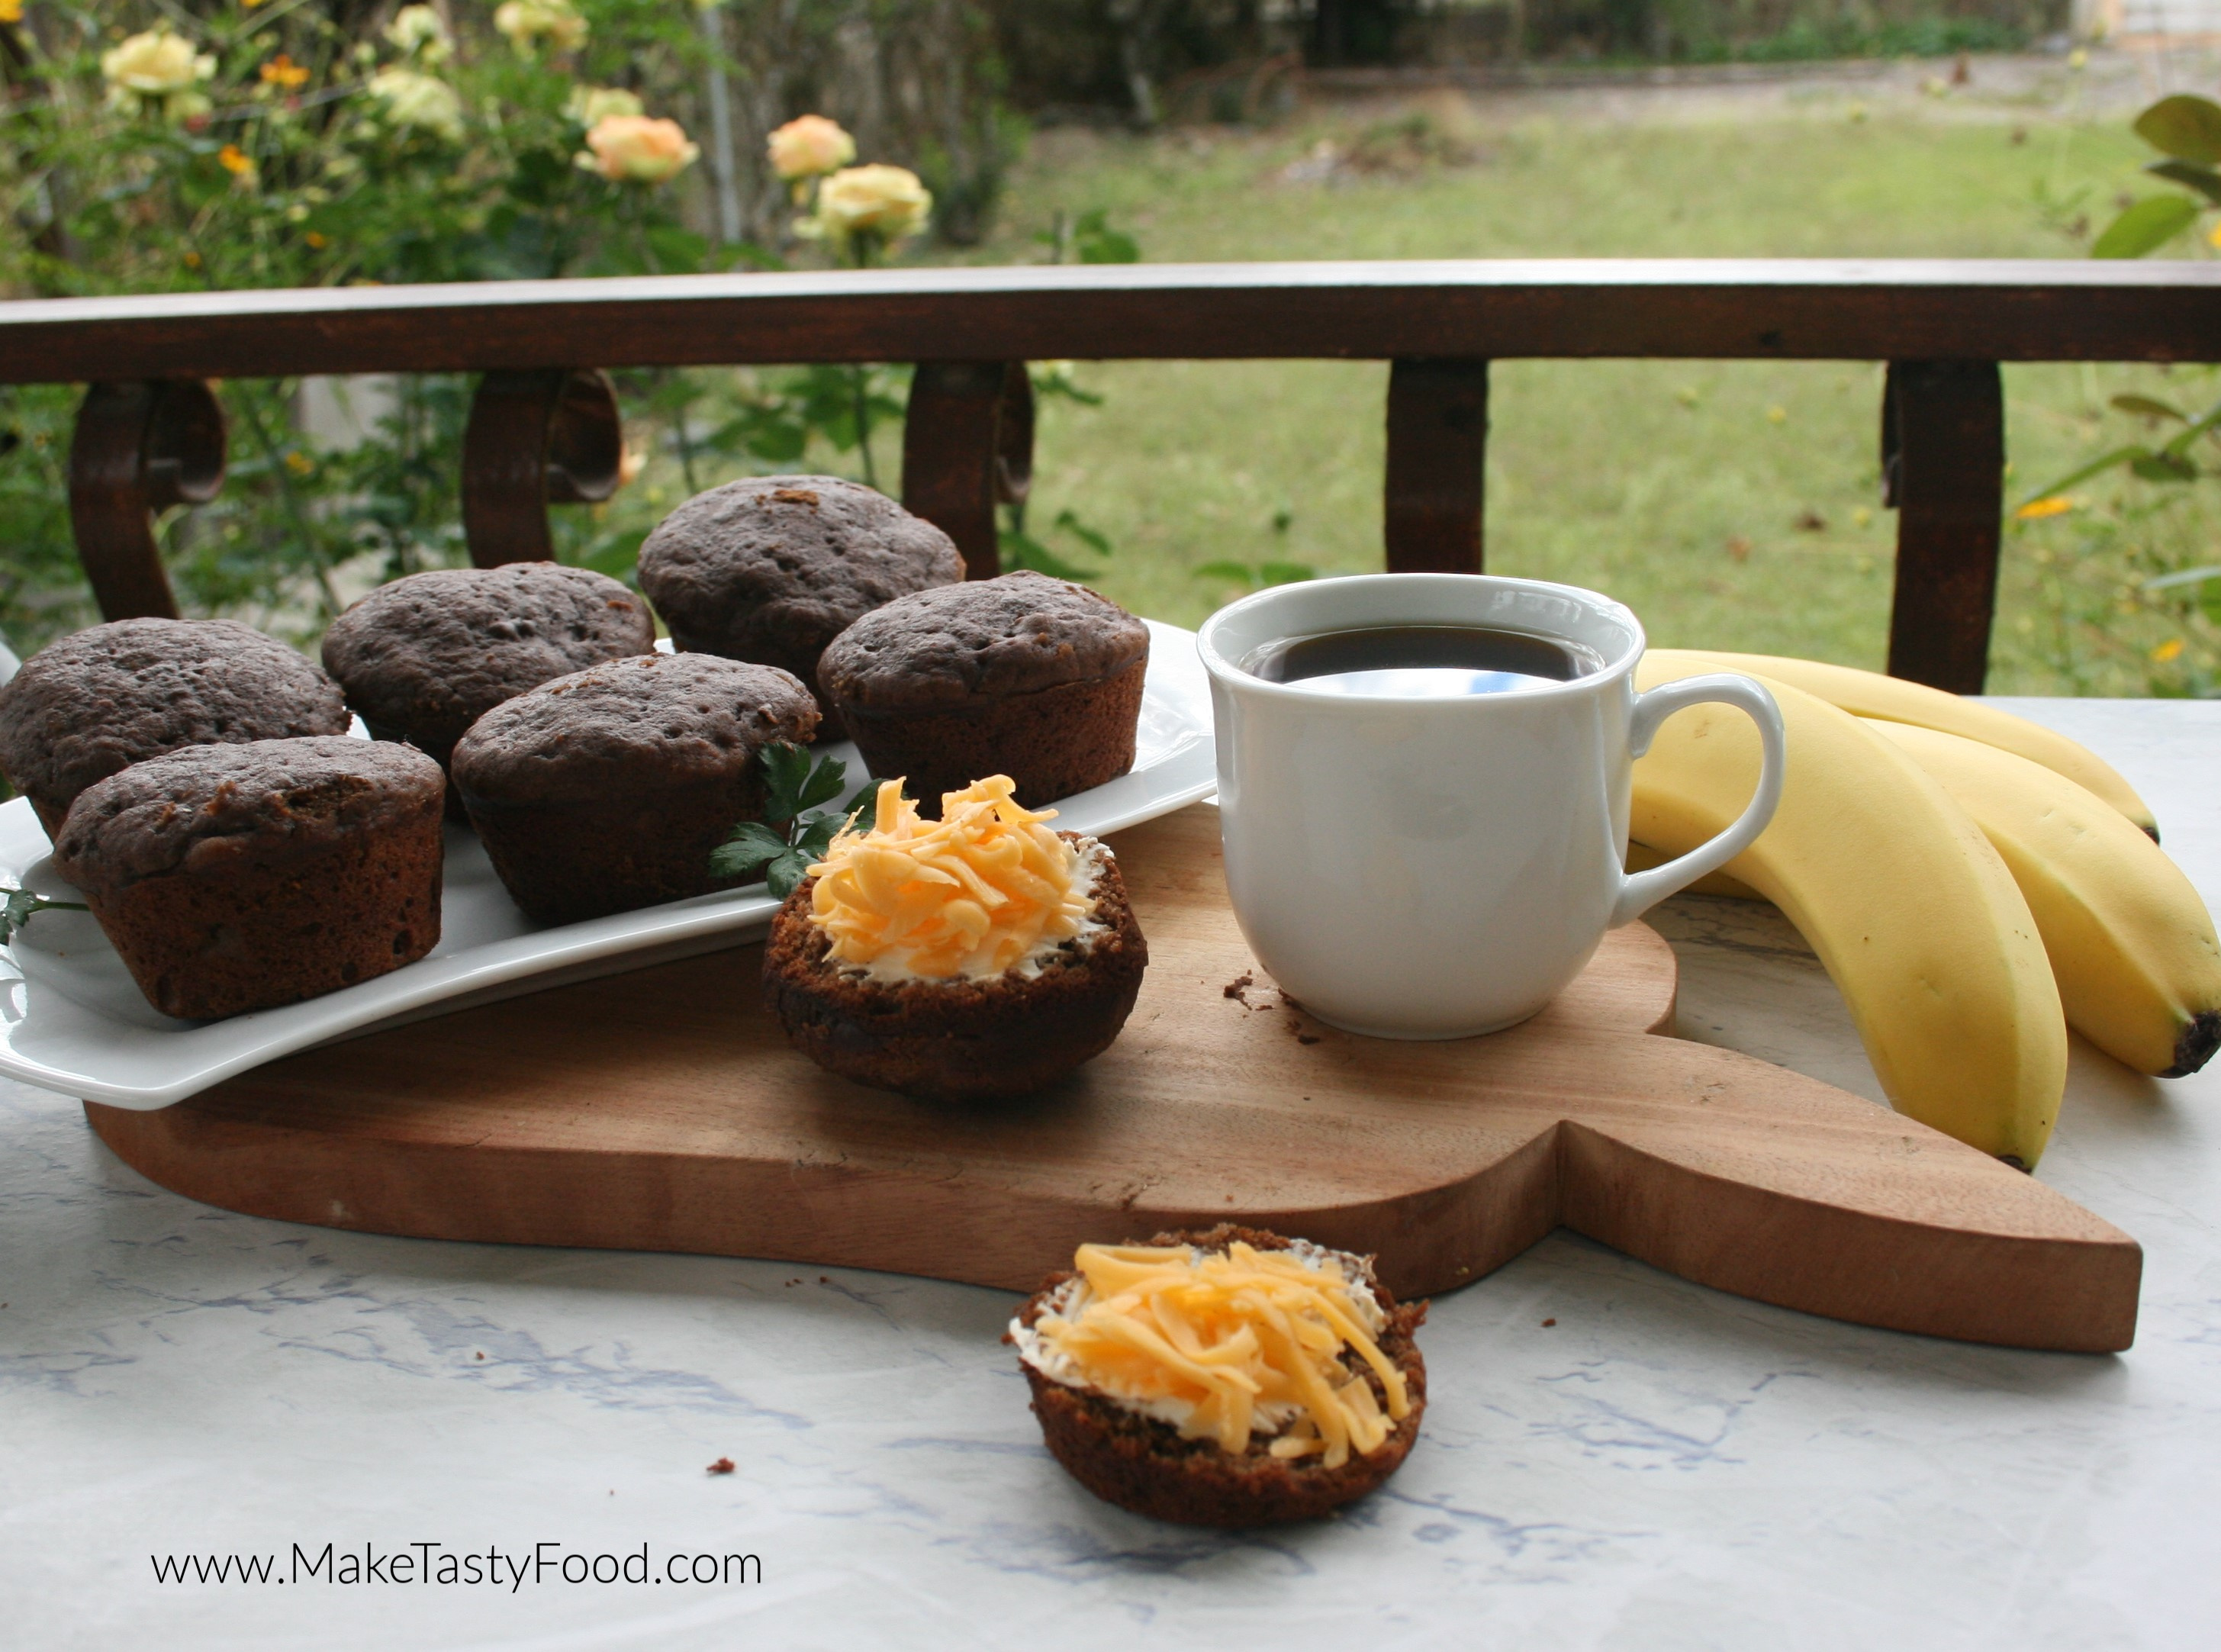 some coffee and chocolate muffins made with banana plated and cheese and butter on half of muffins